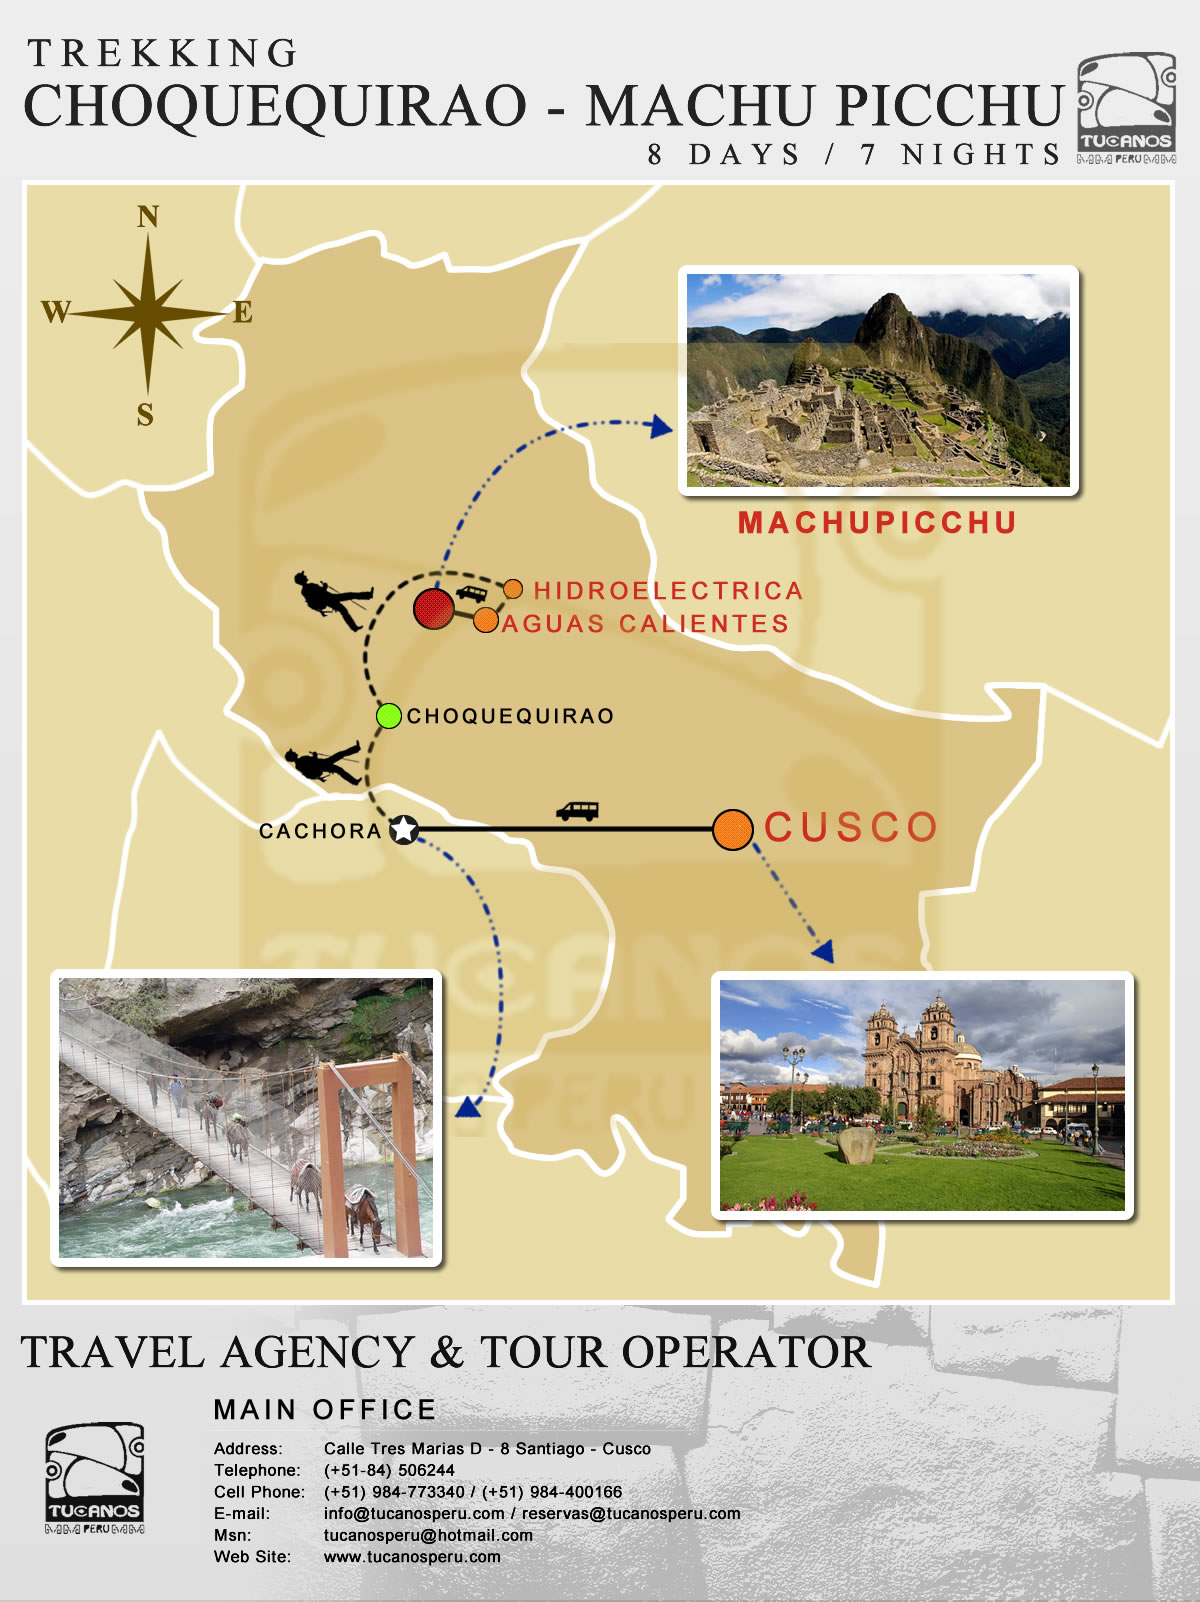 Choquequirao Trek - Machu Picchu 8 Days